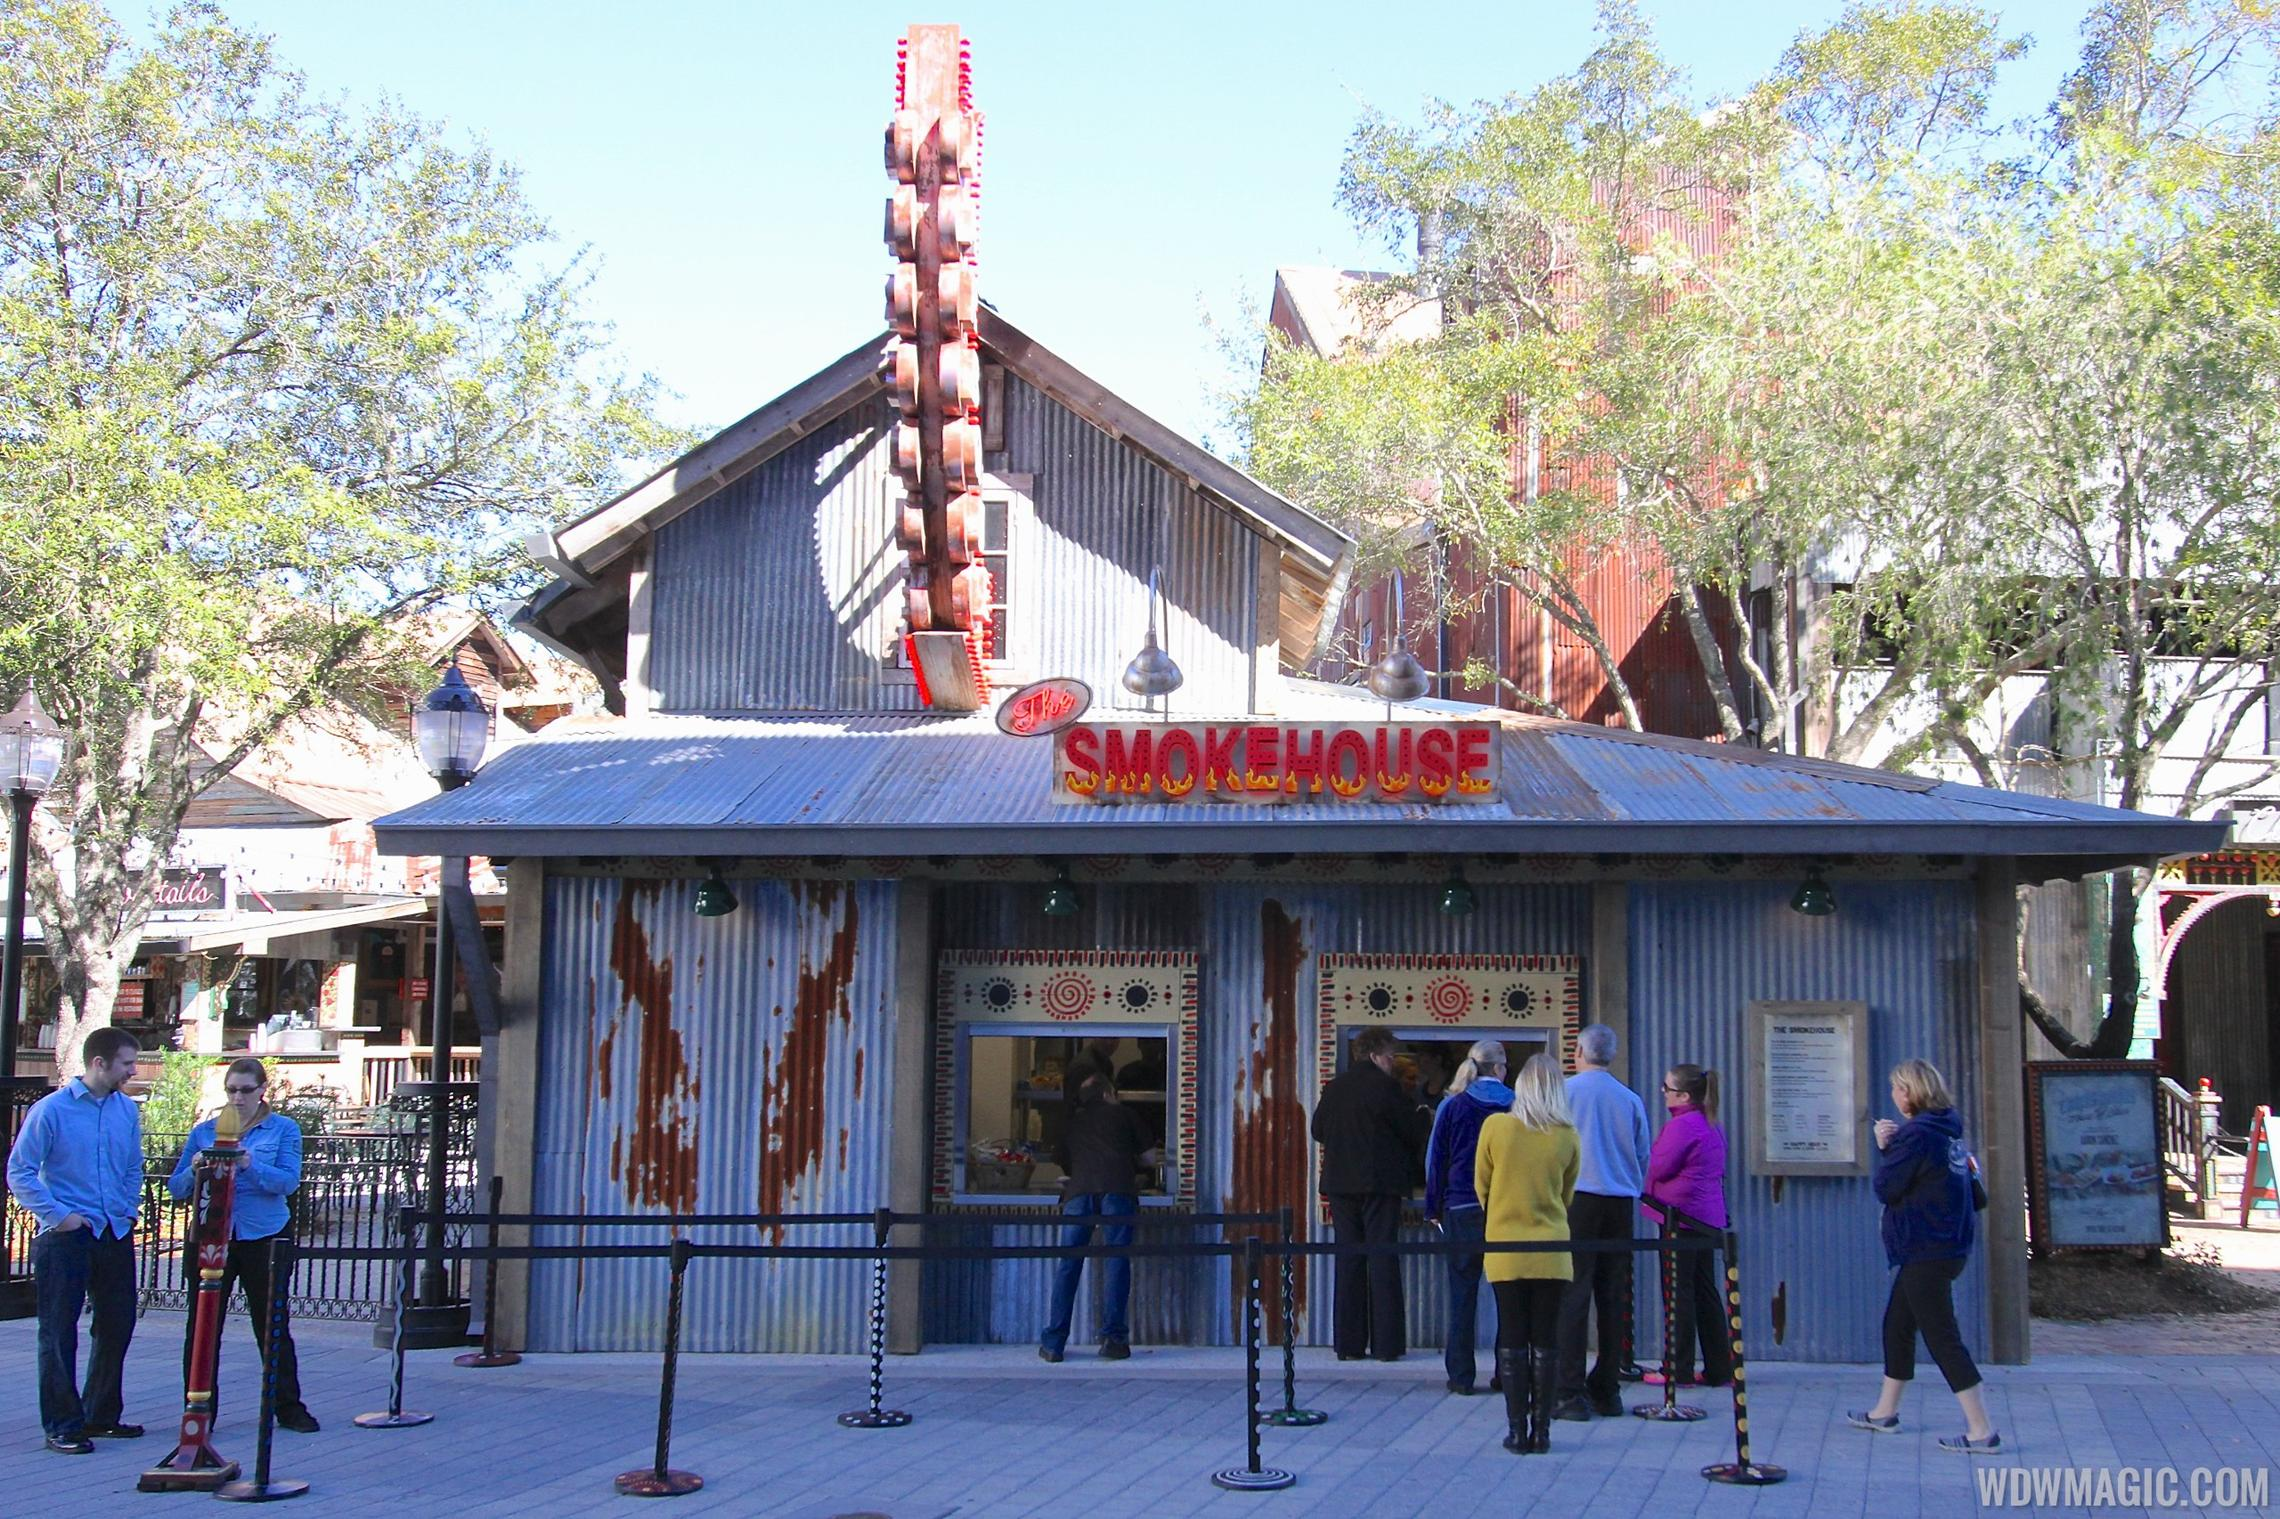 The Smokehouse at House of Blues